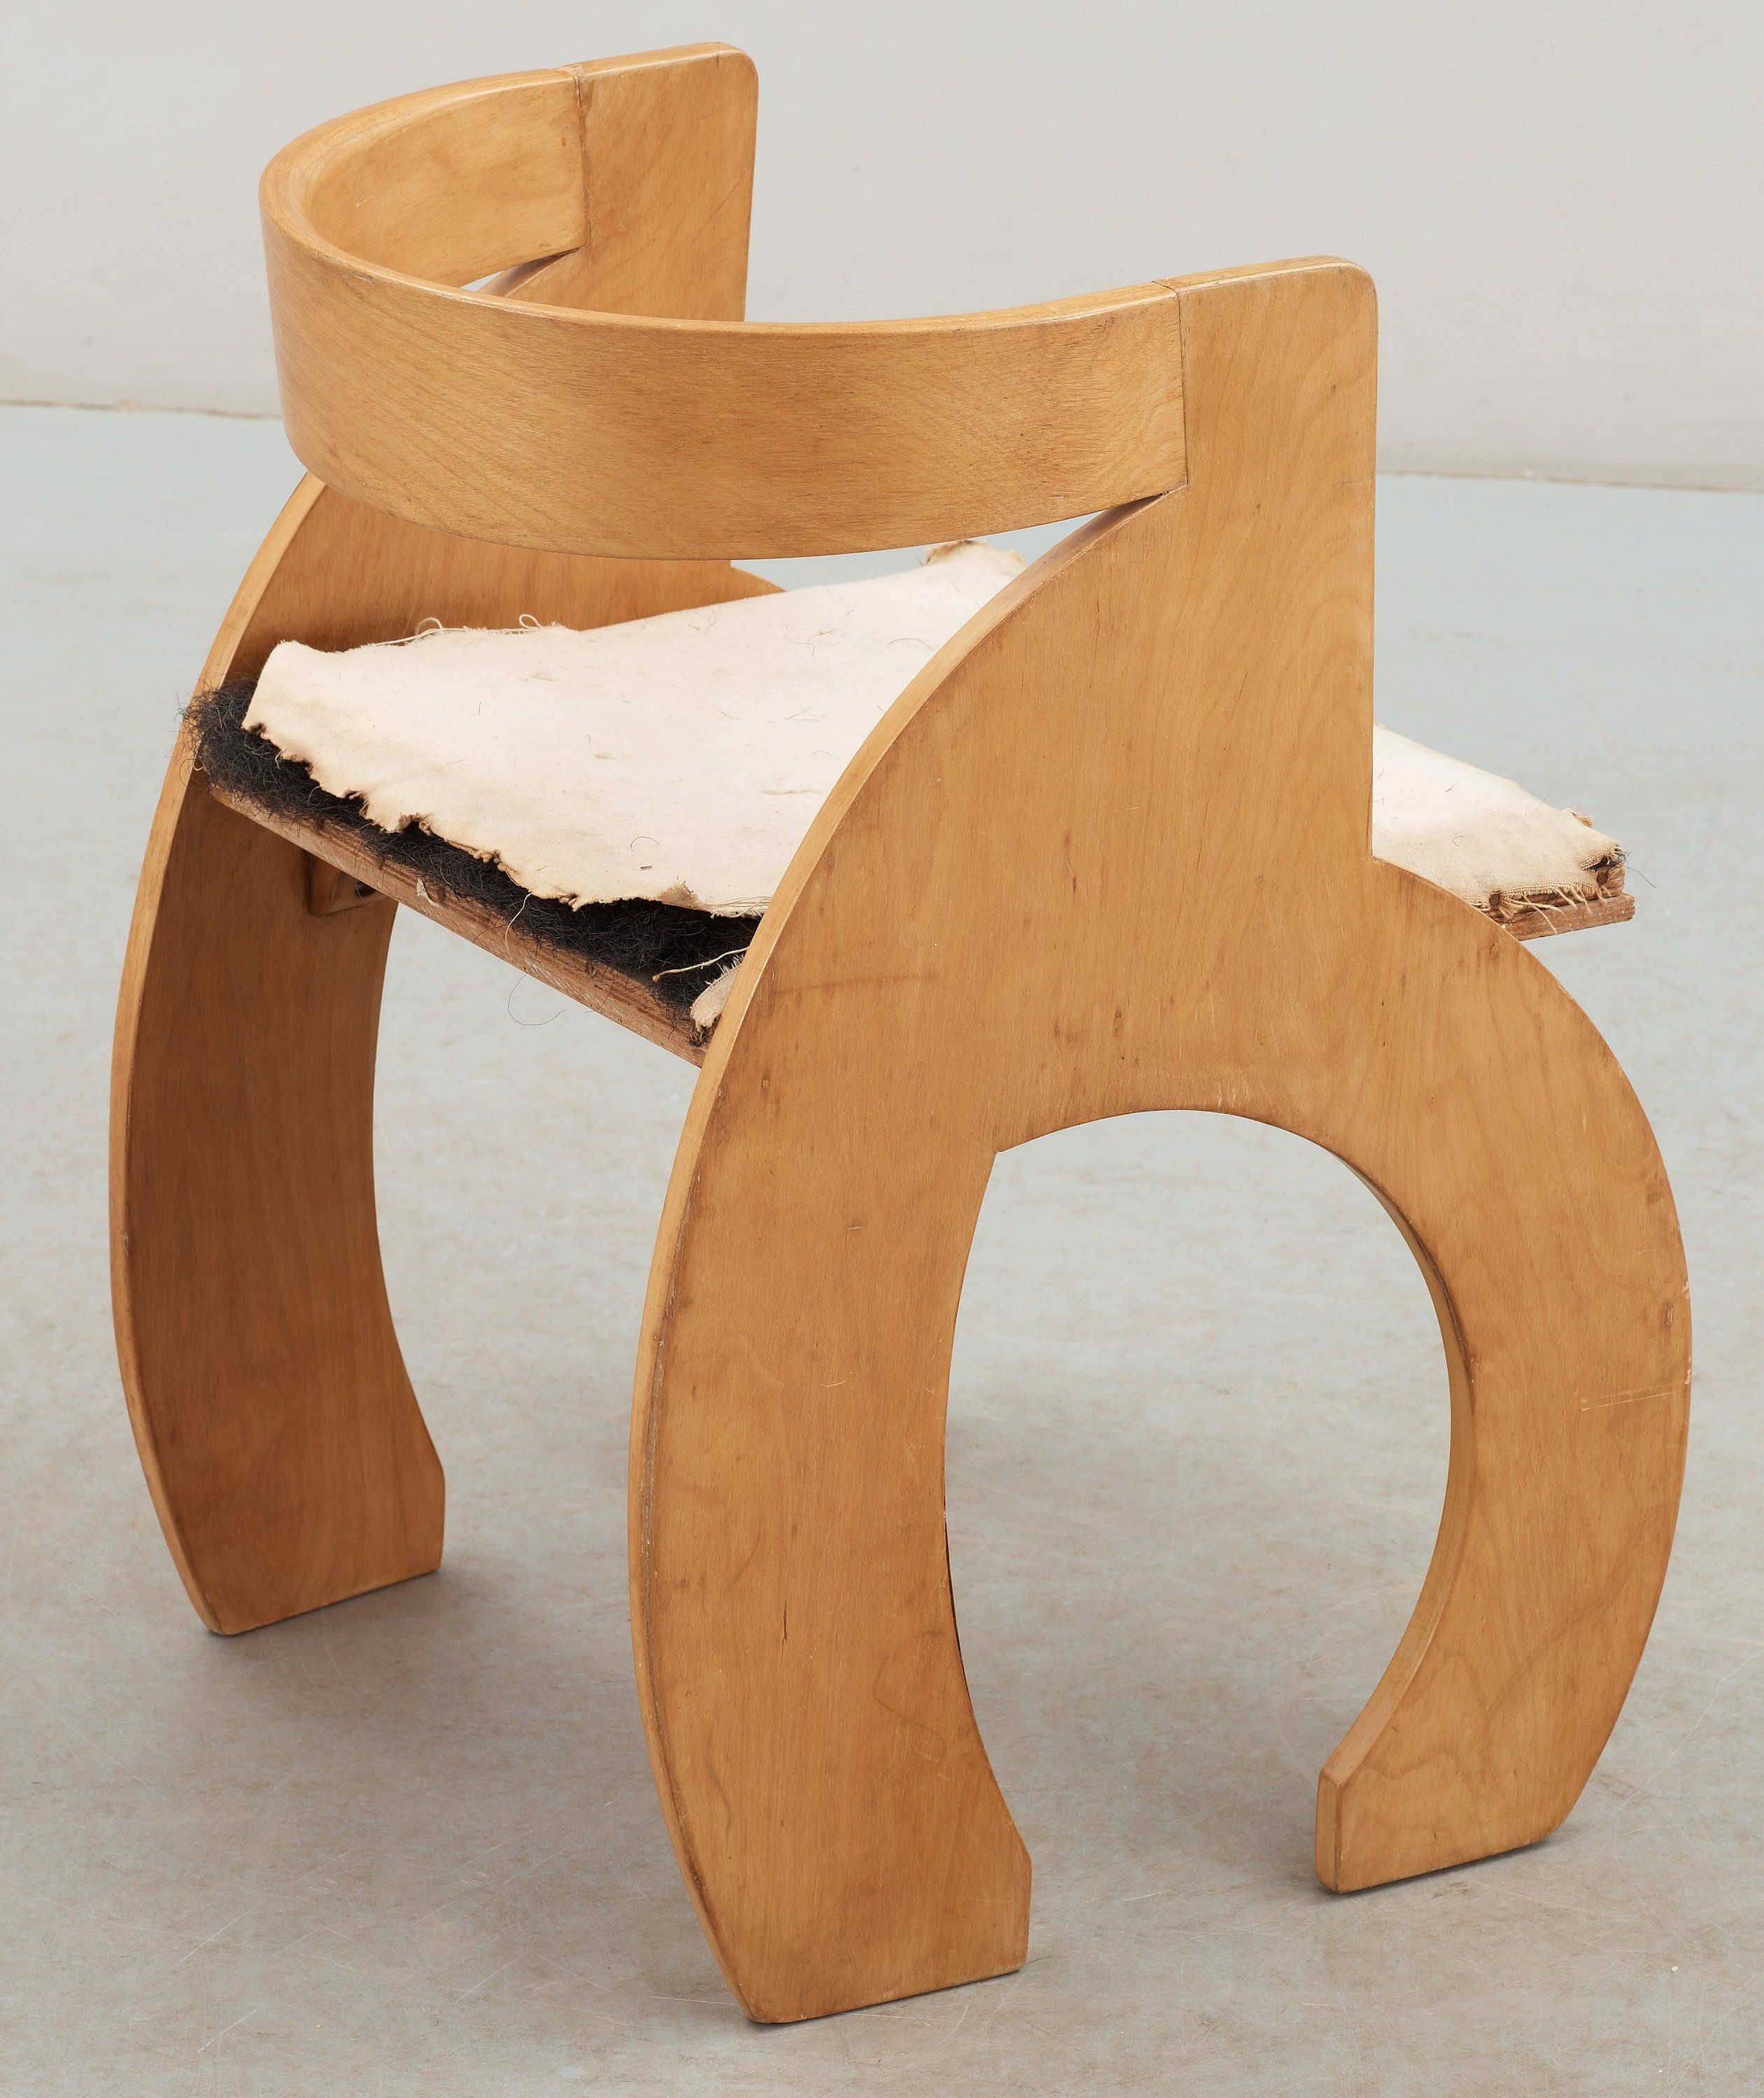 Simple plywood chair - Gerald Summers Birch Laminate Chair For Simple Furniture 1930s